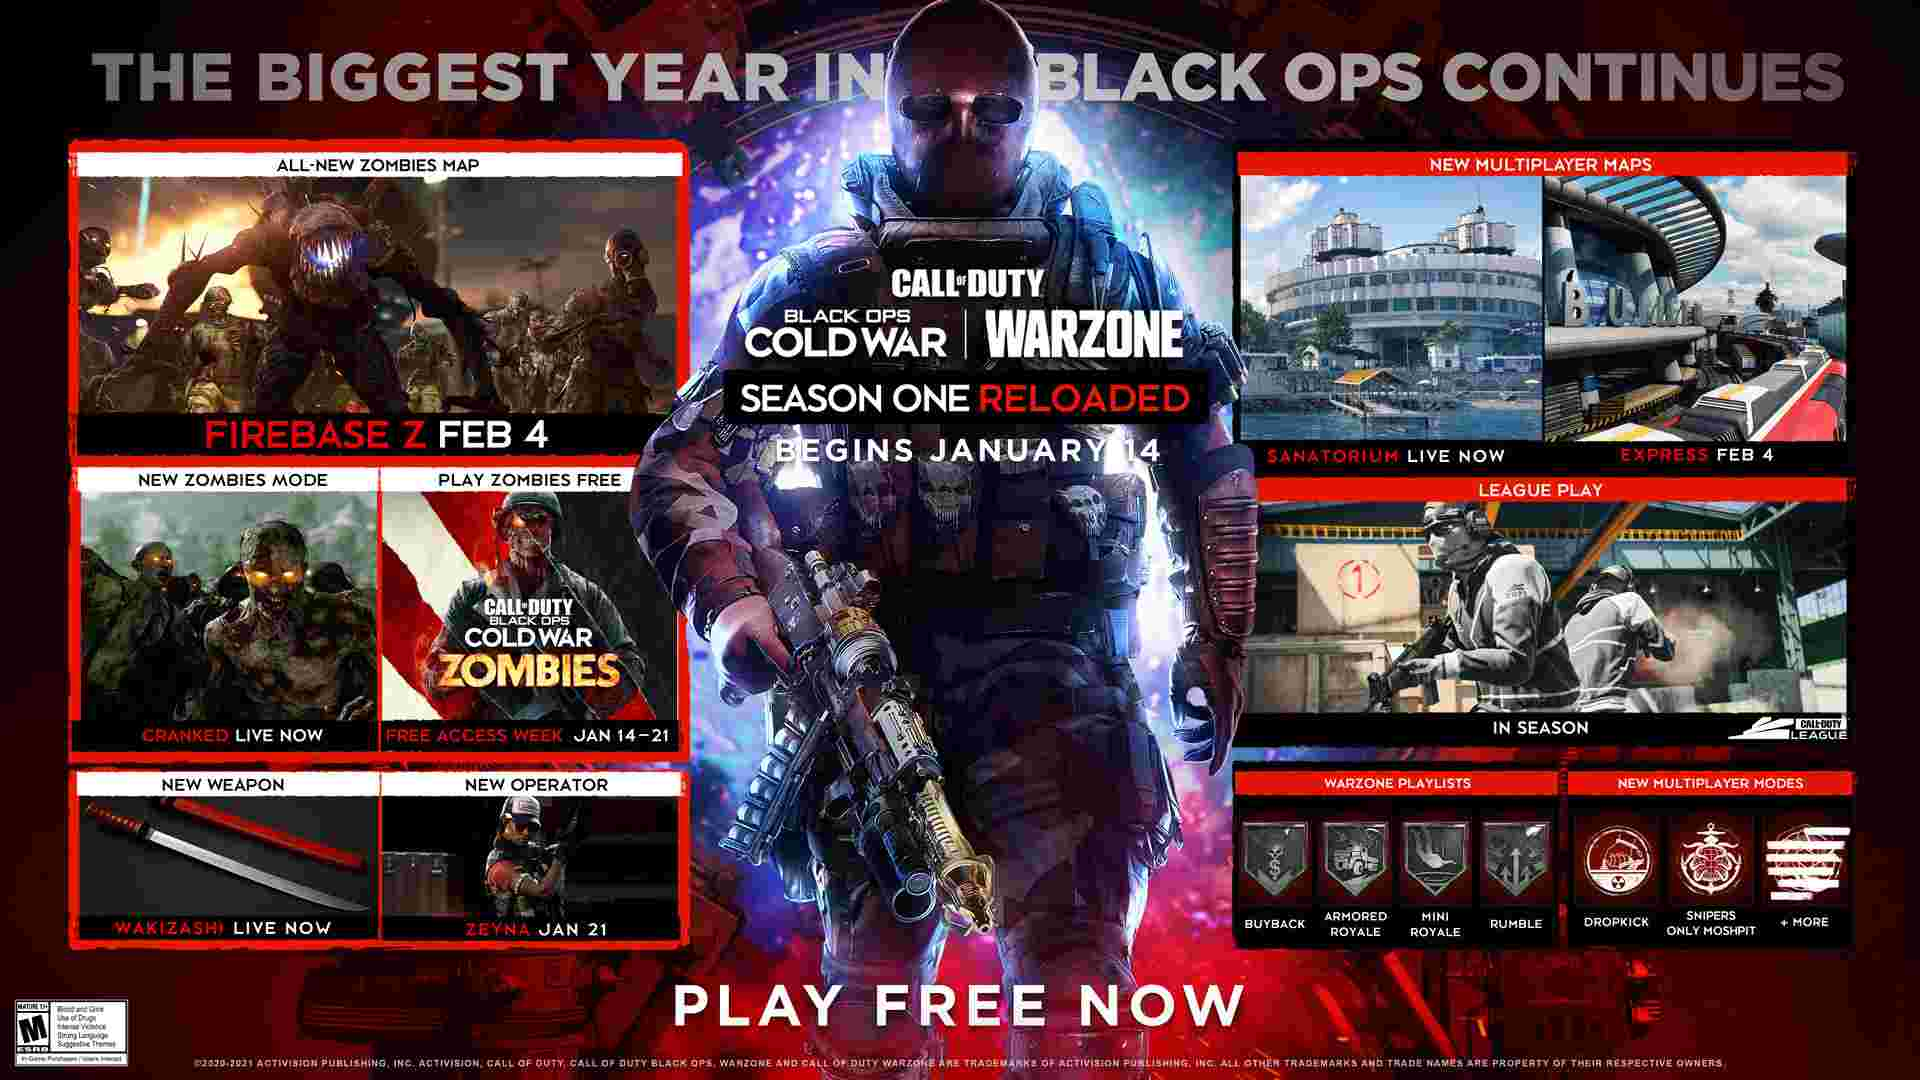 Call of Duty: Black Ops Cold War Express